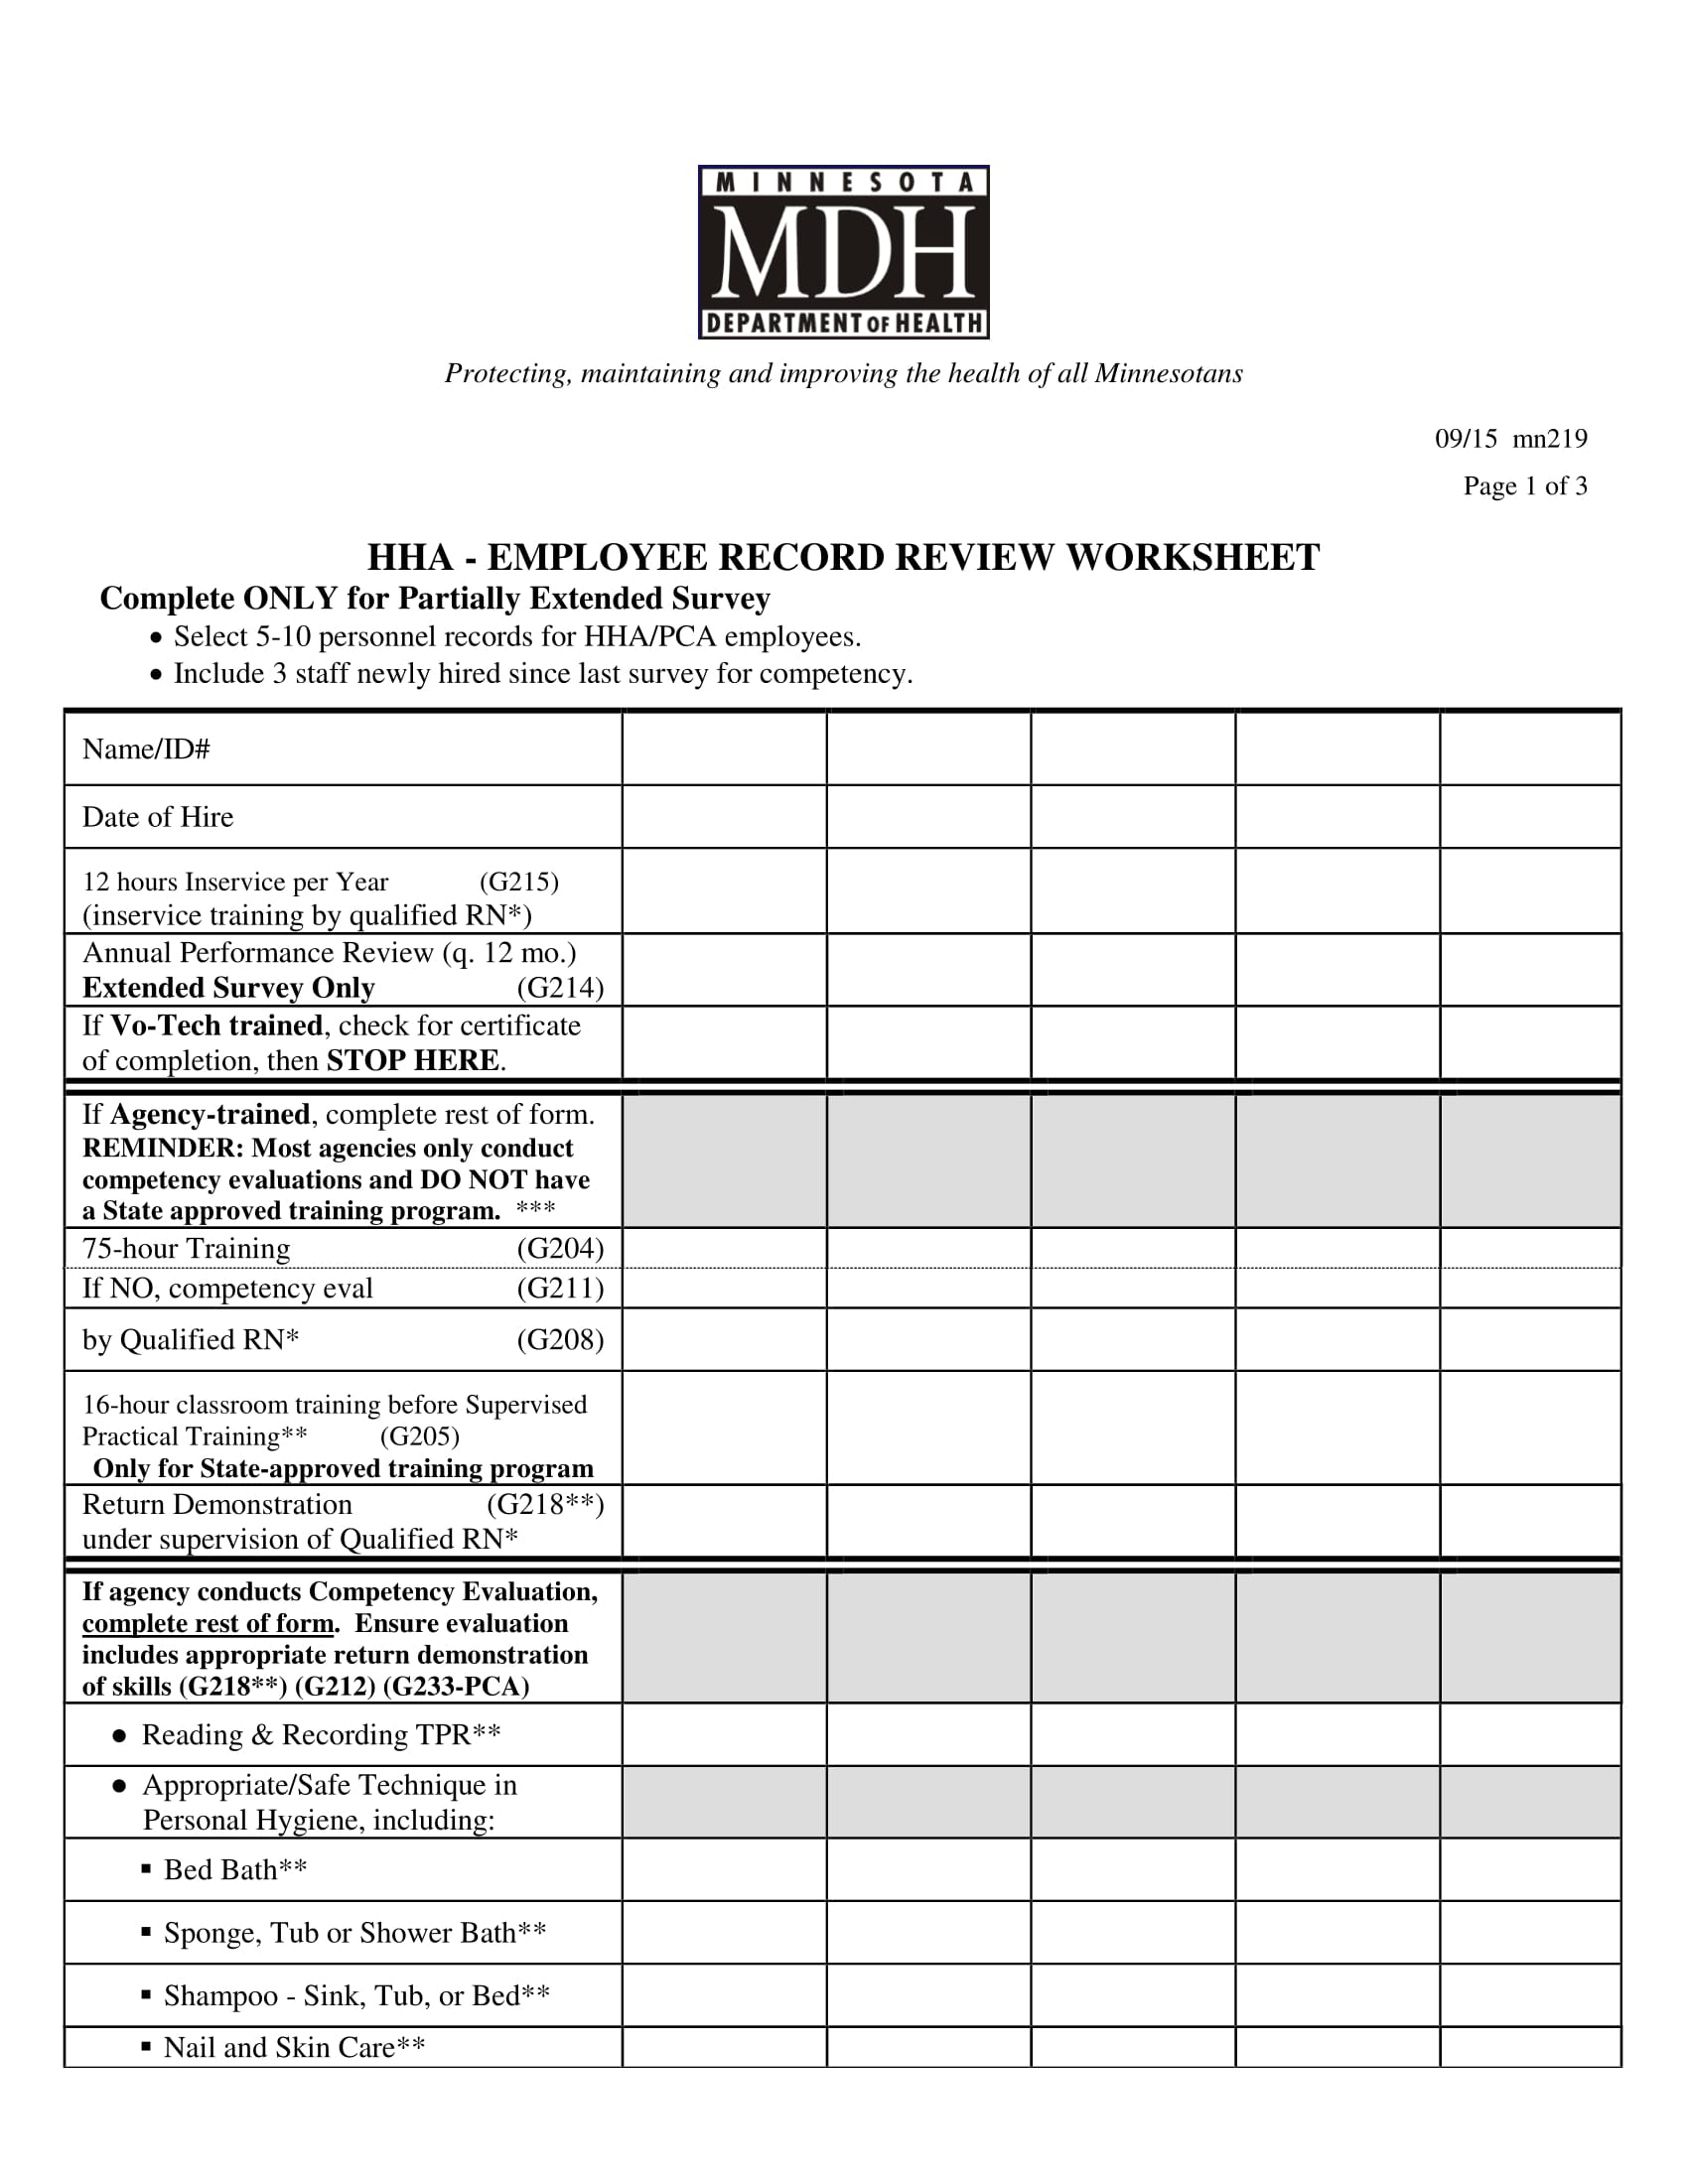 employee record review form 1